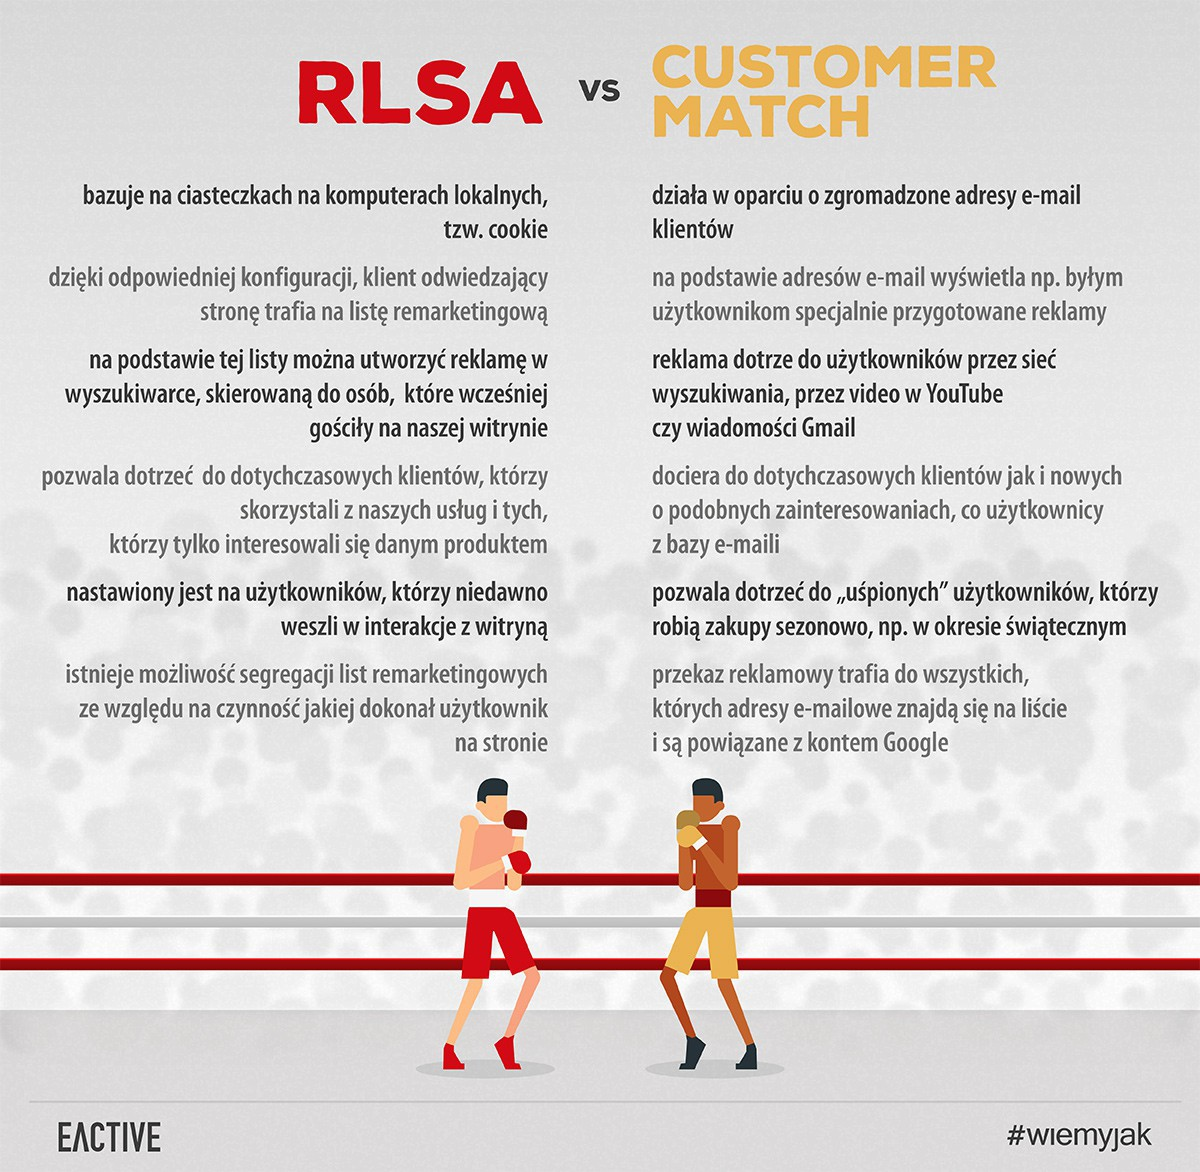 rlsa vs customer match